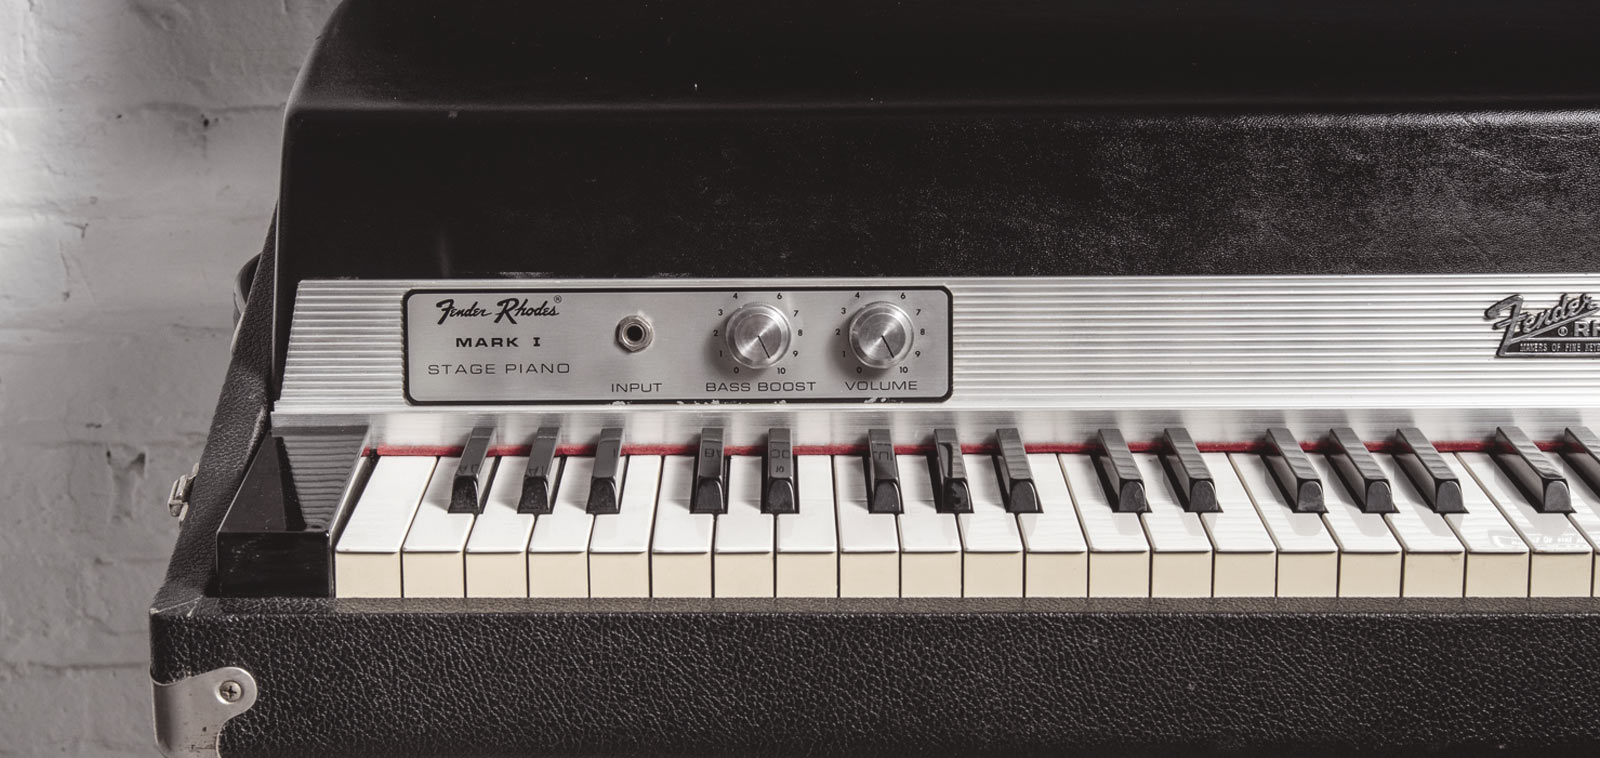 Fender Rhodes Mark 1